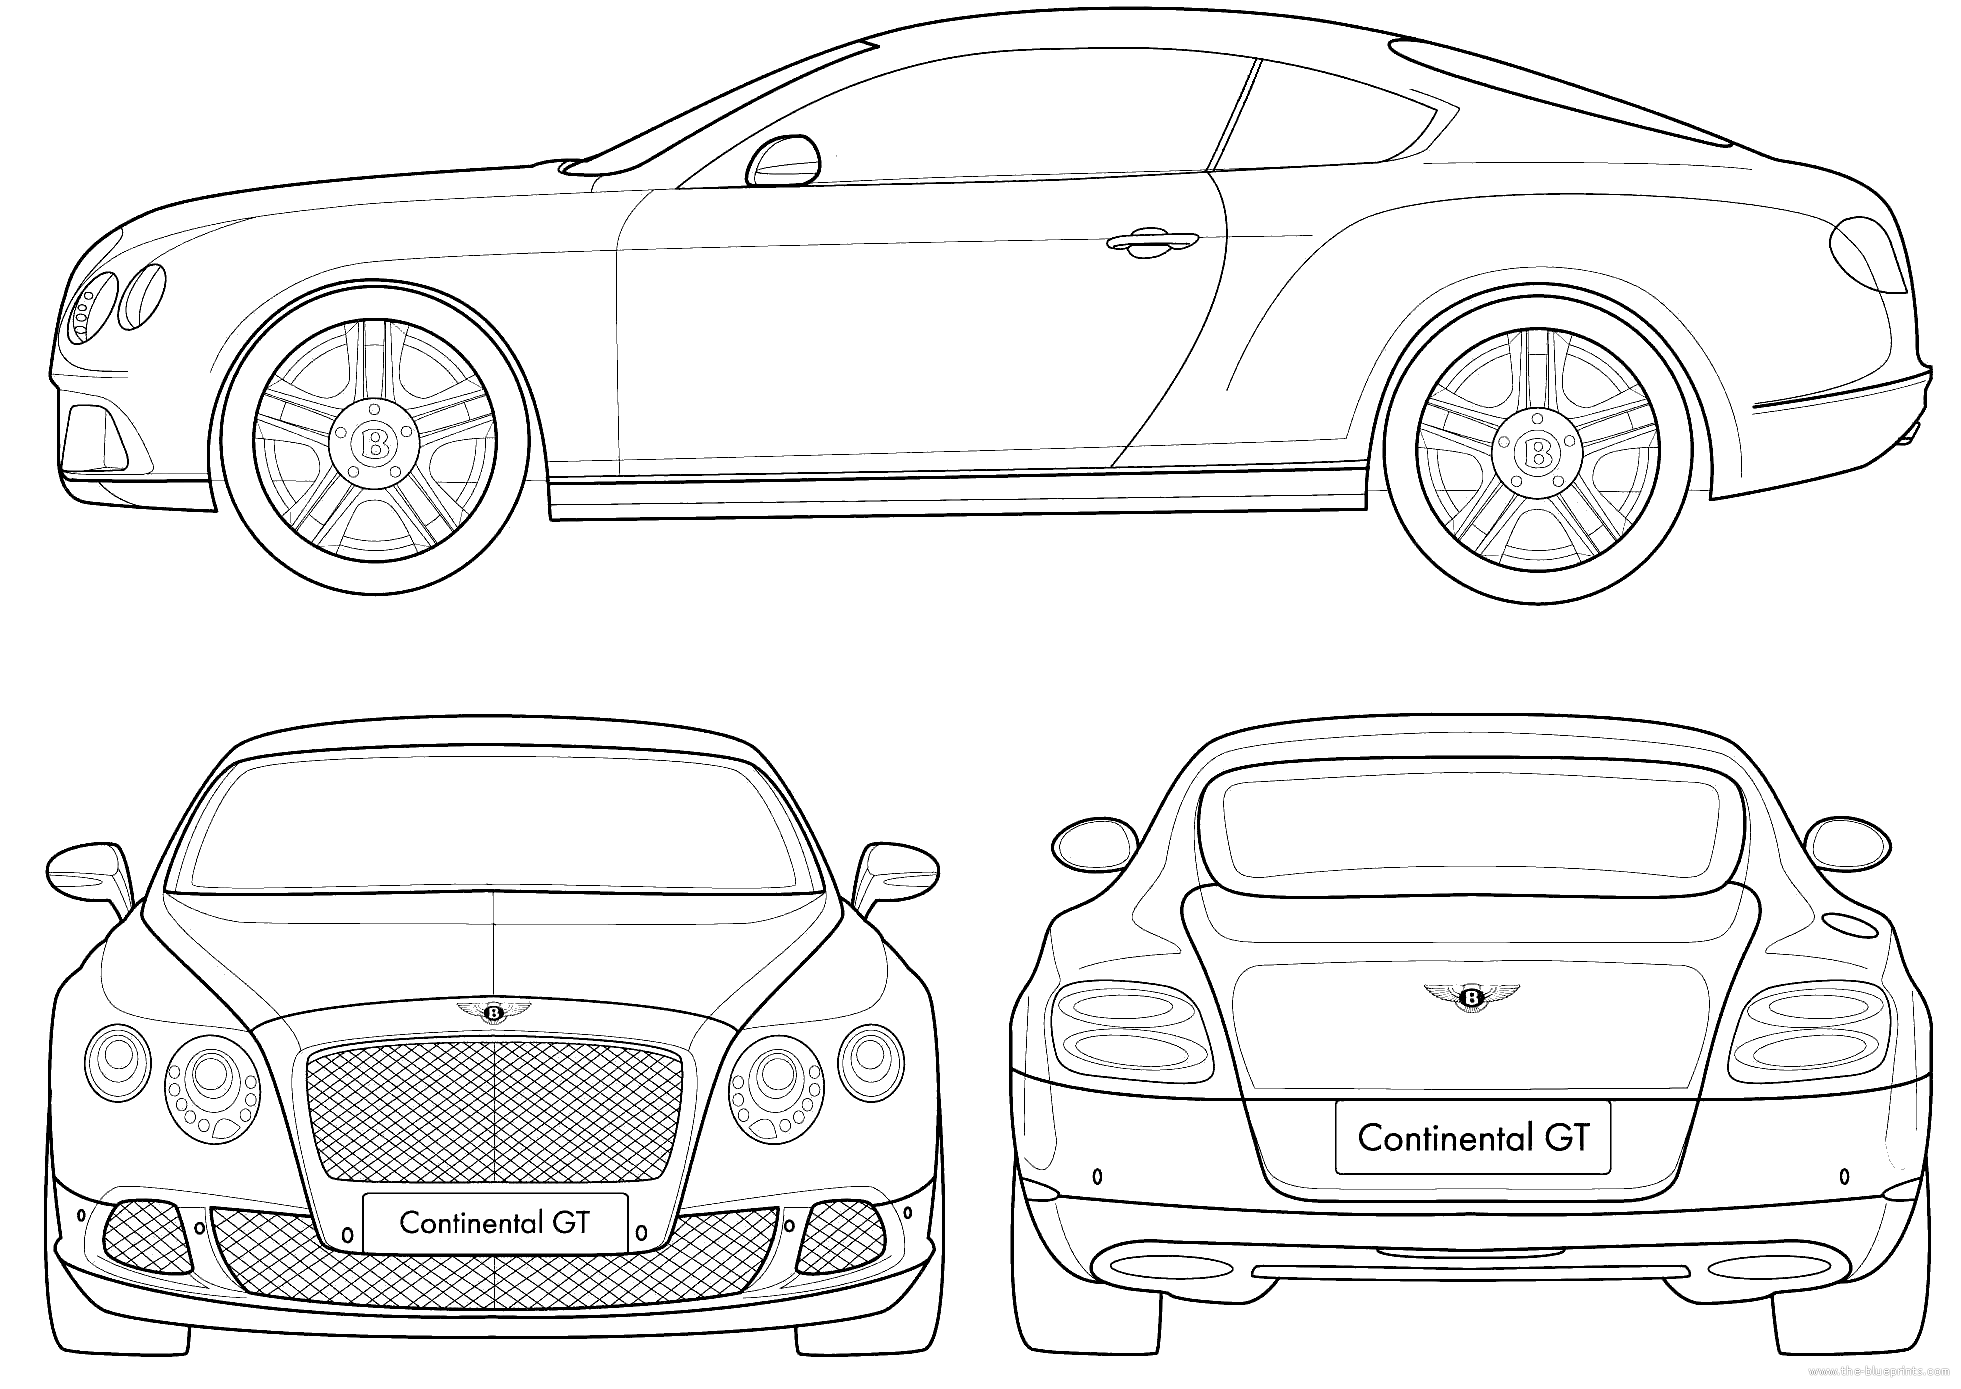 Blueprints cars bentley bentley continental gt coupe 2011 bentley continental gt coupe 2011 malvernweather Gallery